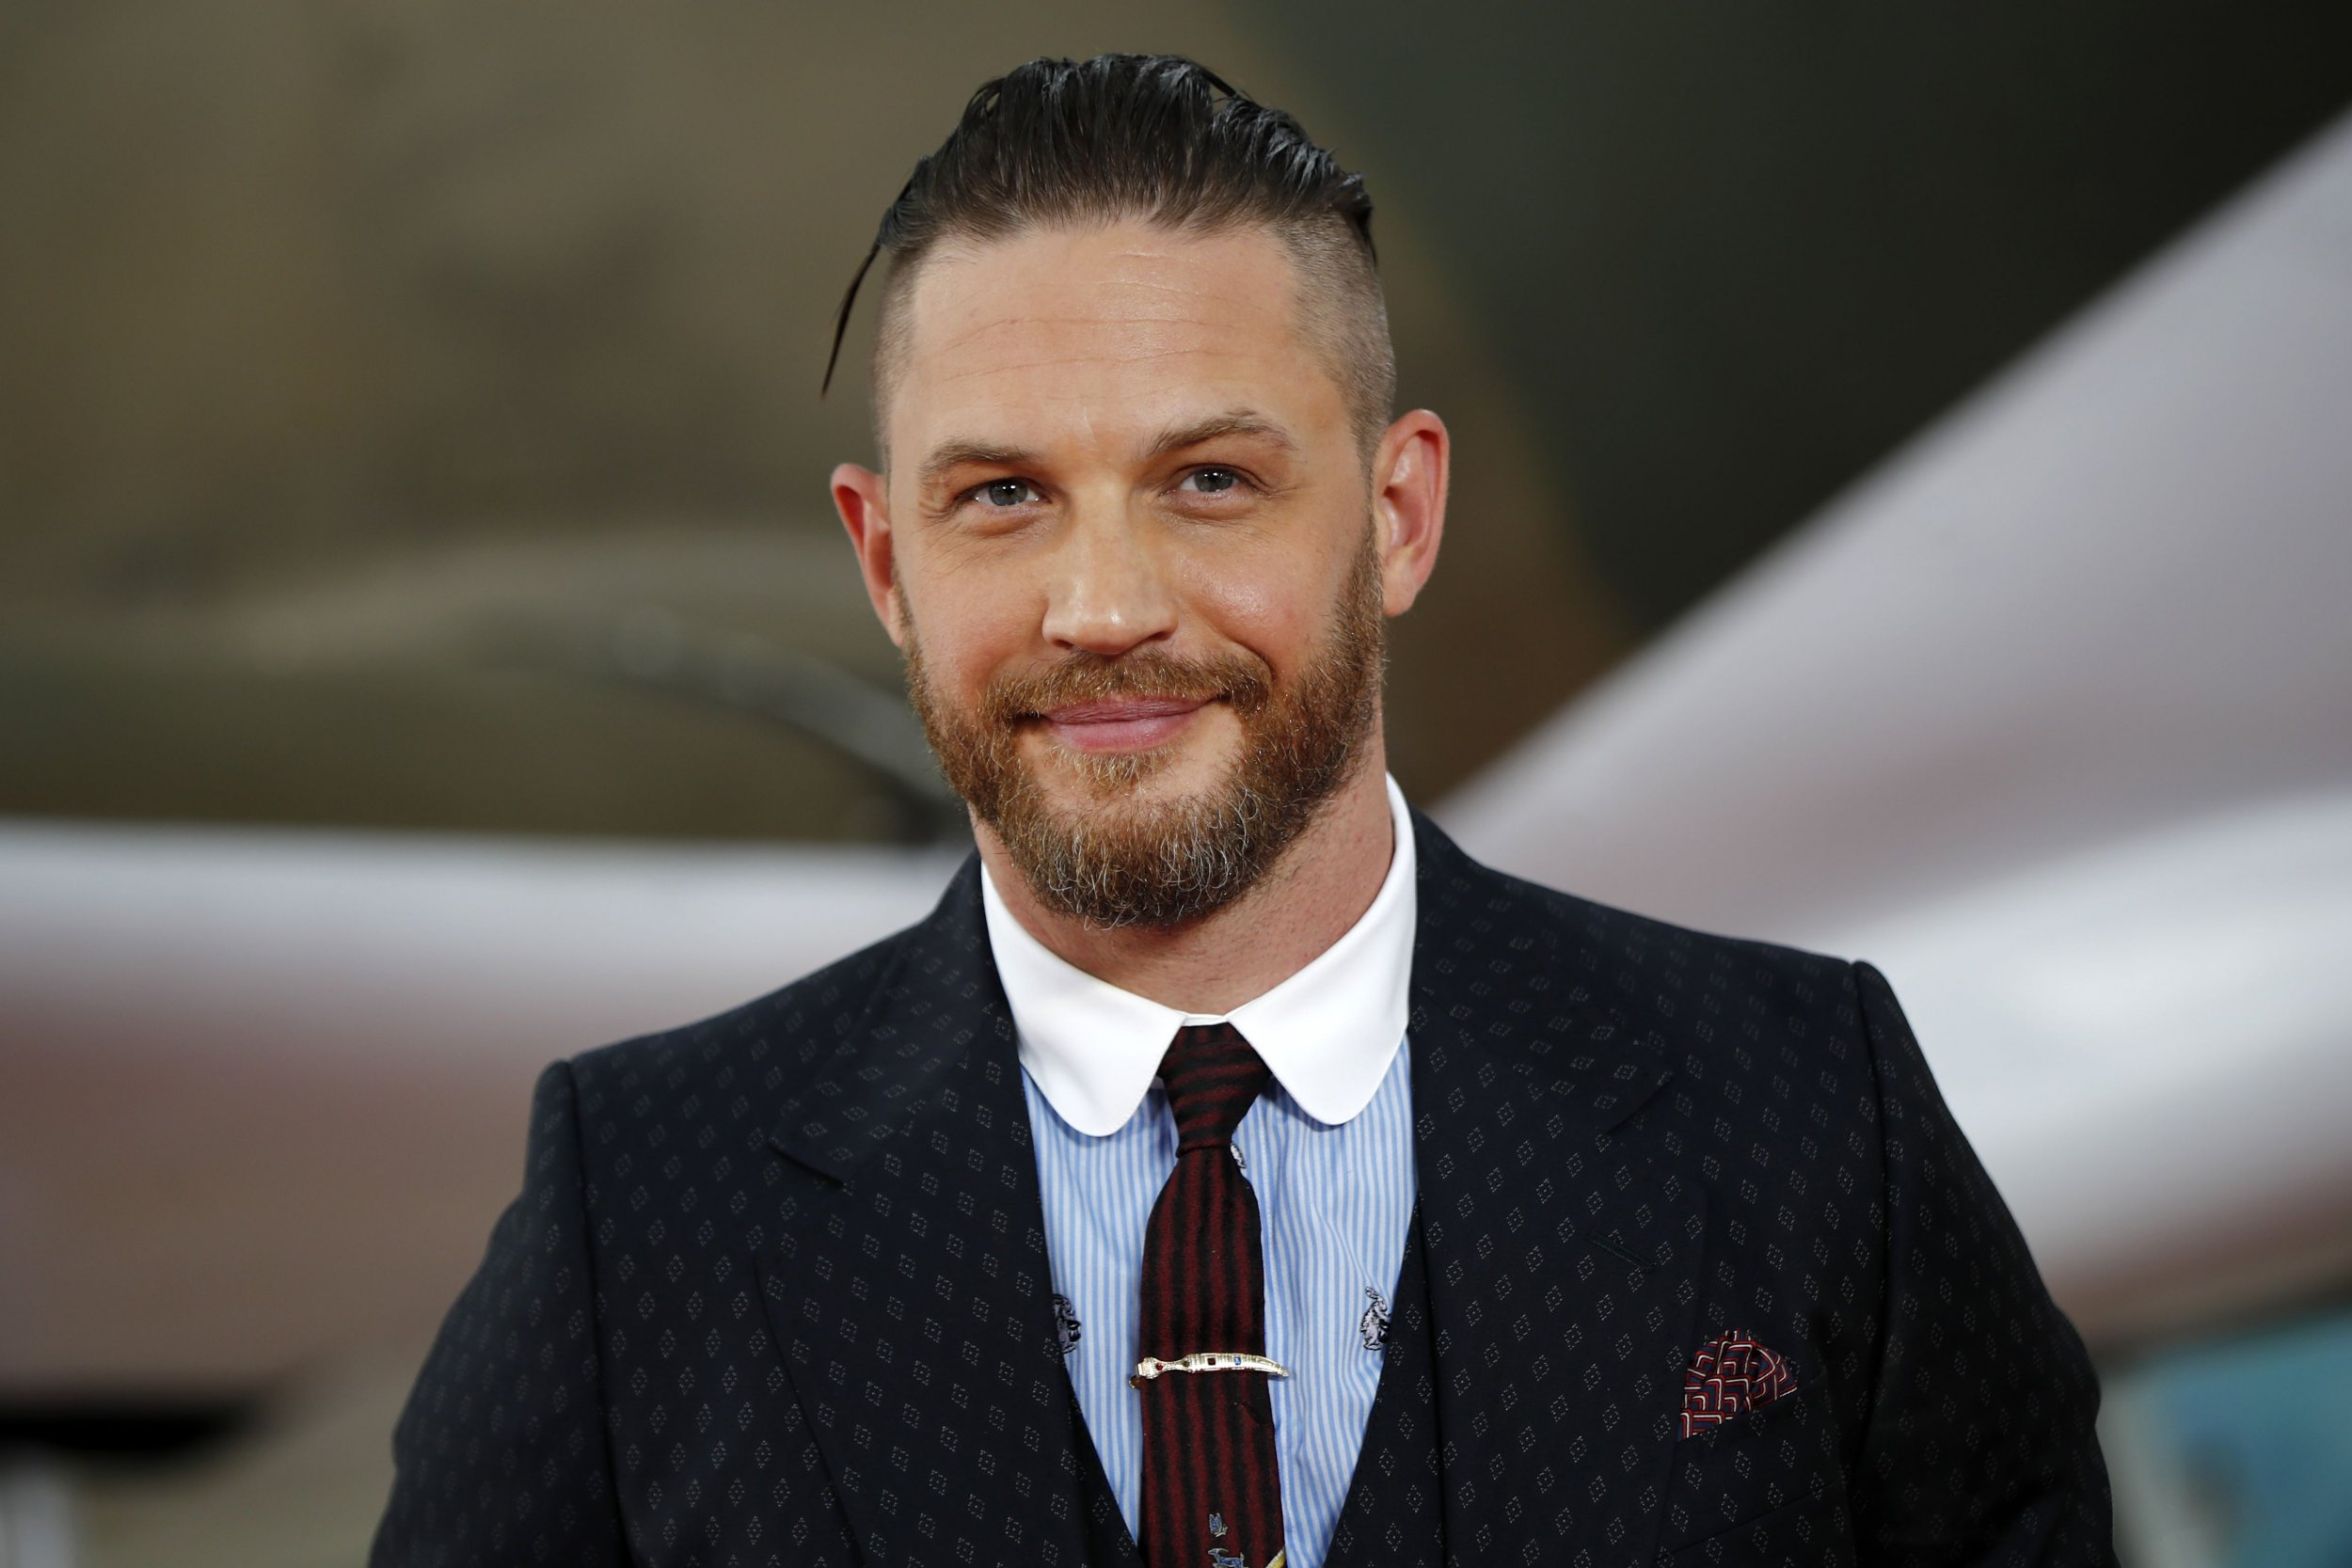 tom hardy [Source: Newsweek]